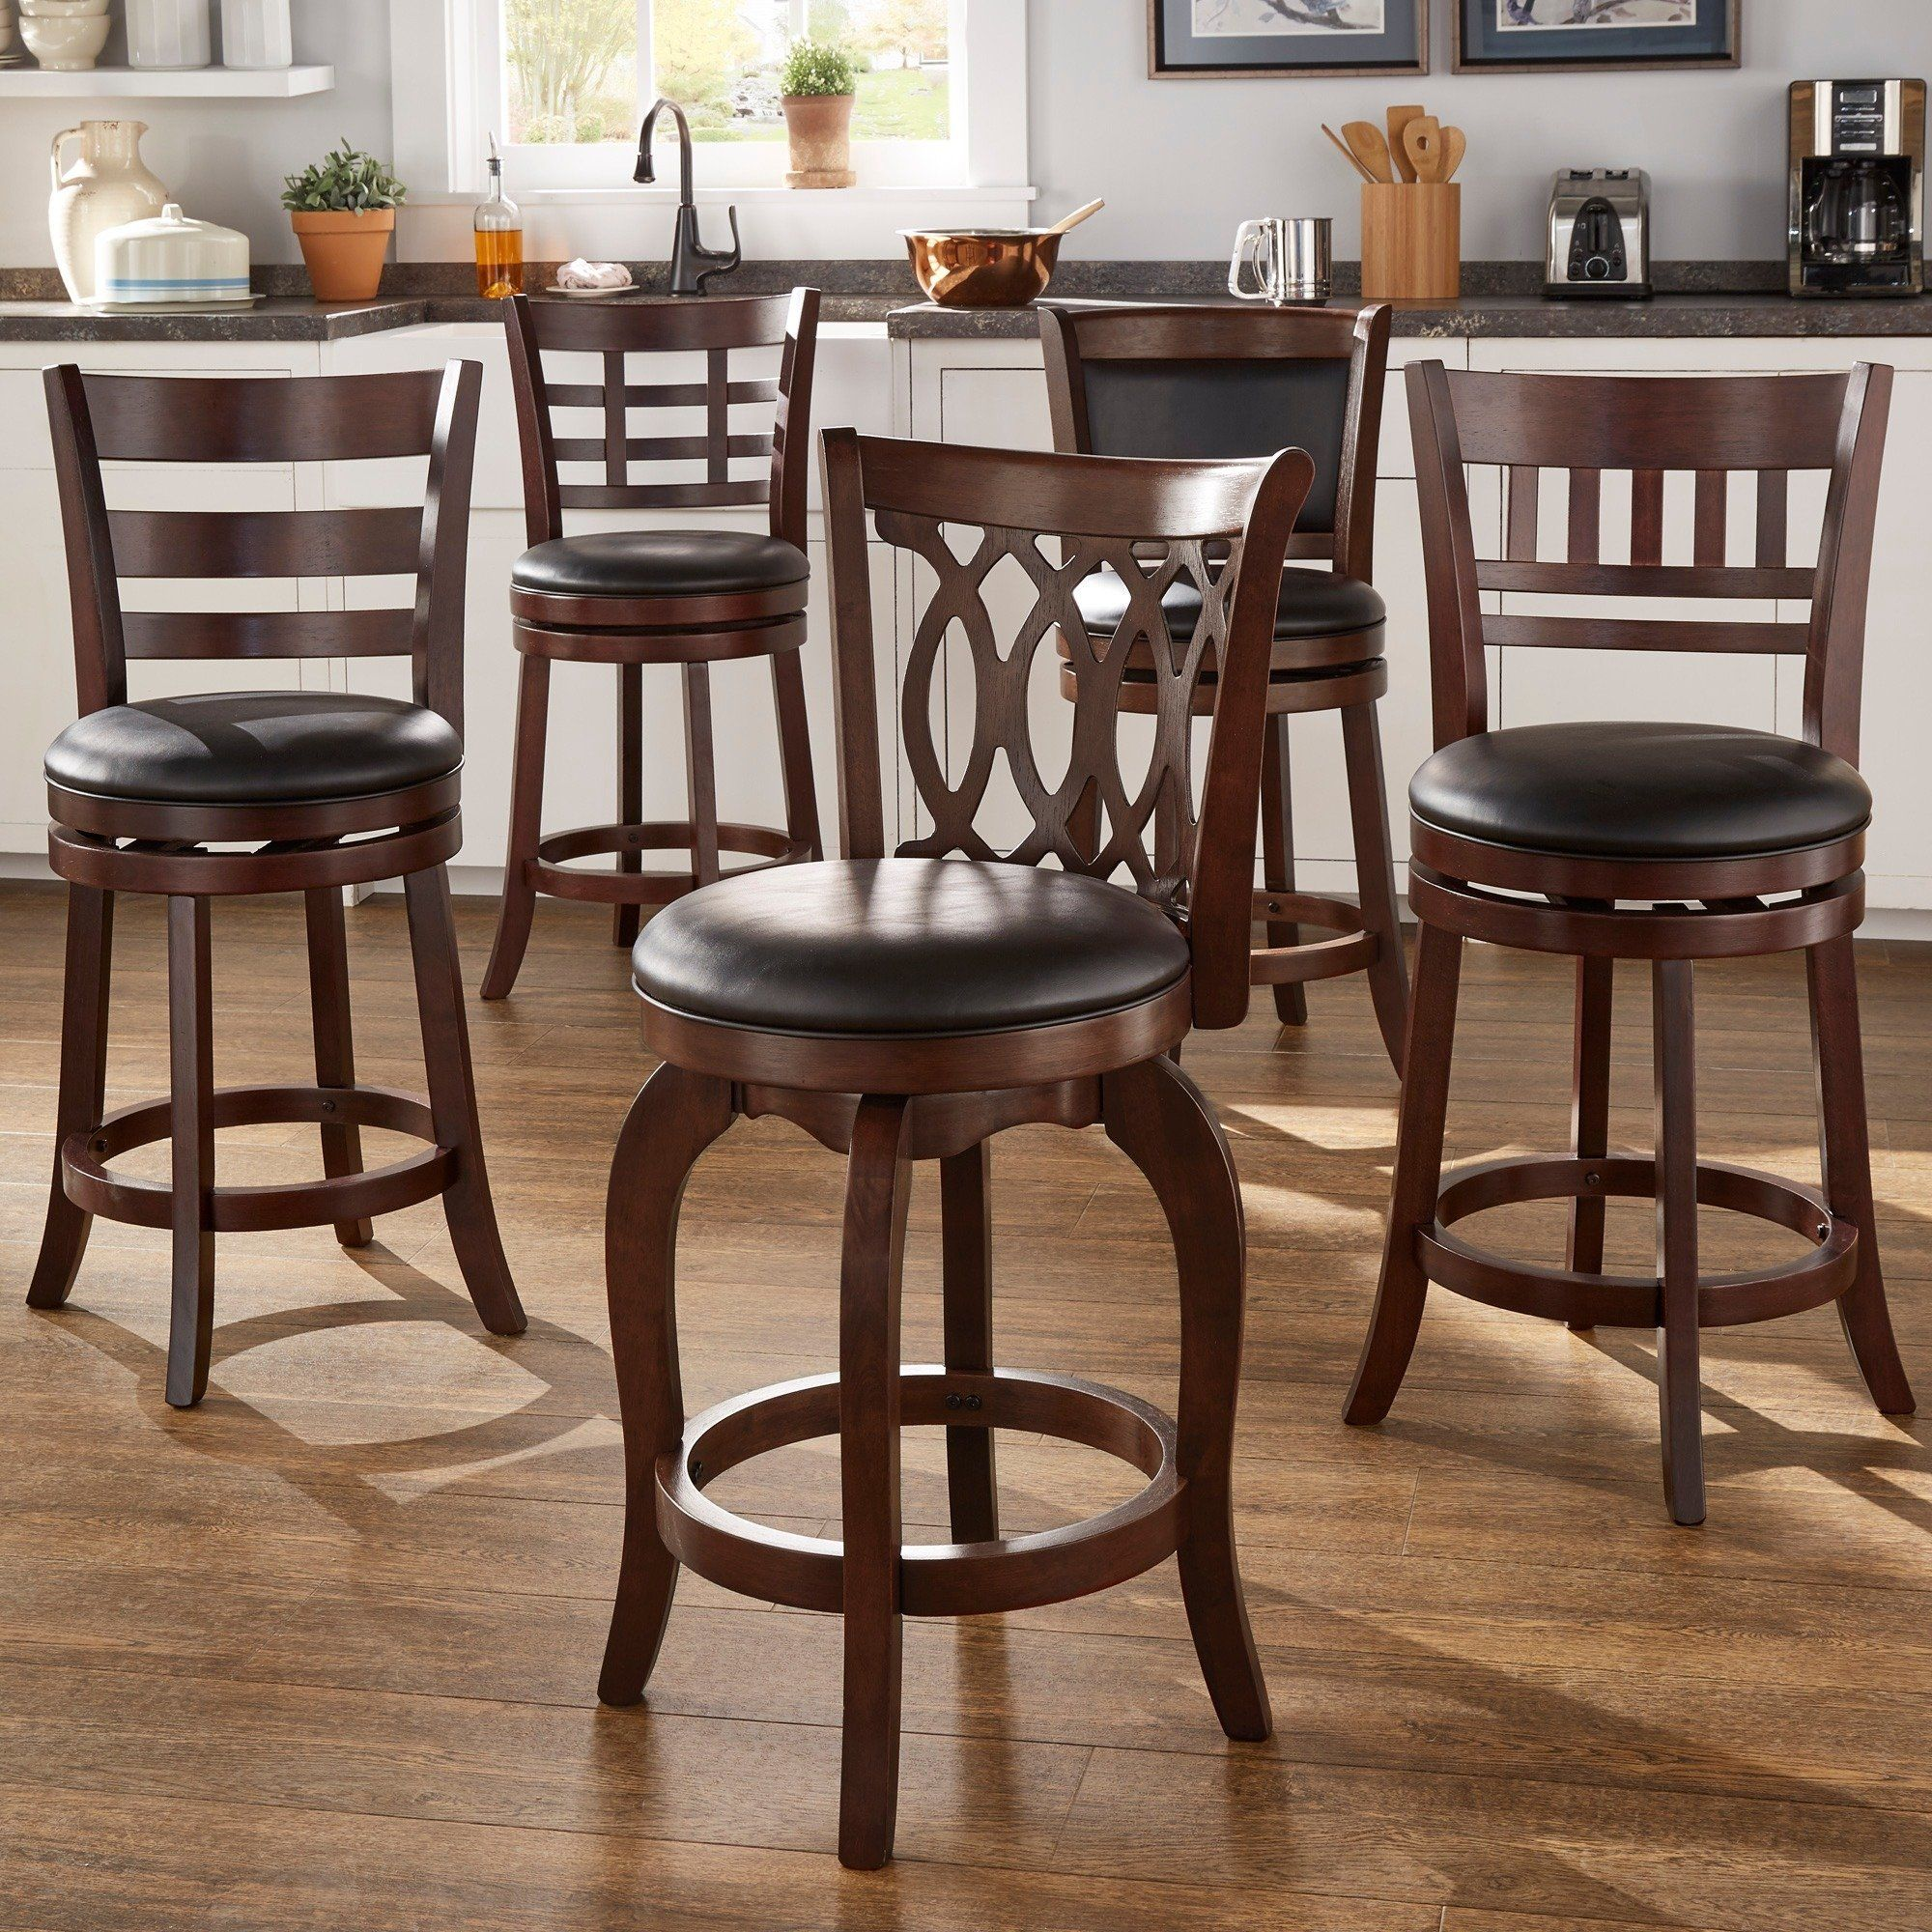 Counter Height Chairs Counter Height Stools Dining Room Bar